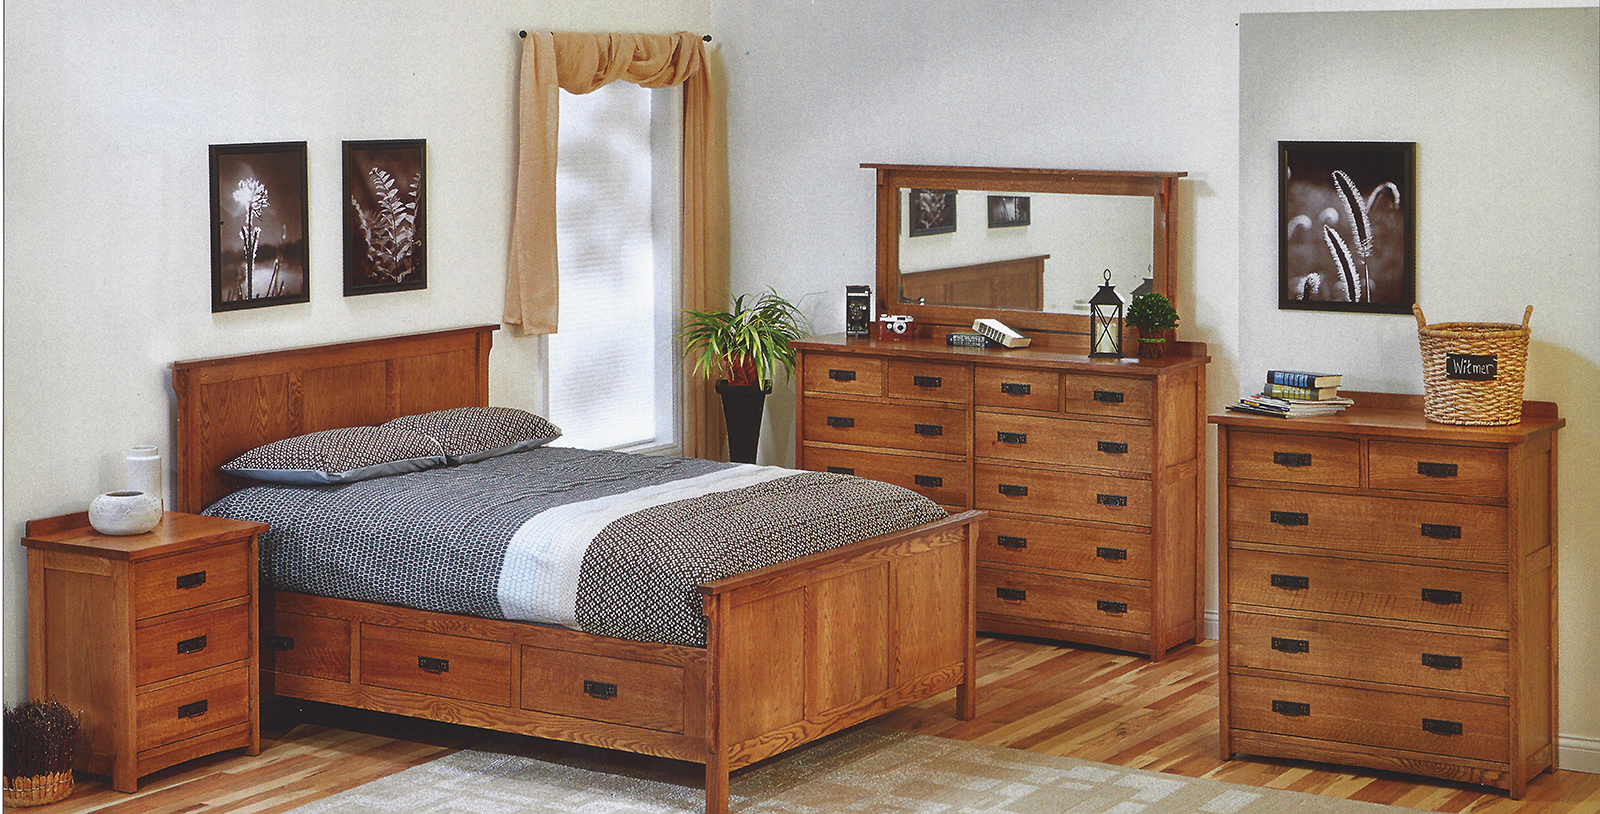 . Bedroom Furniture Fresno   Clovis   Headboards Night stands Bookcases